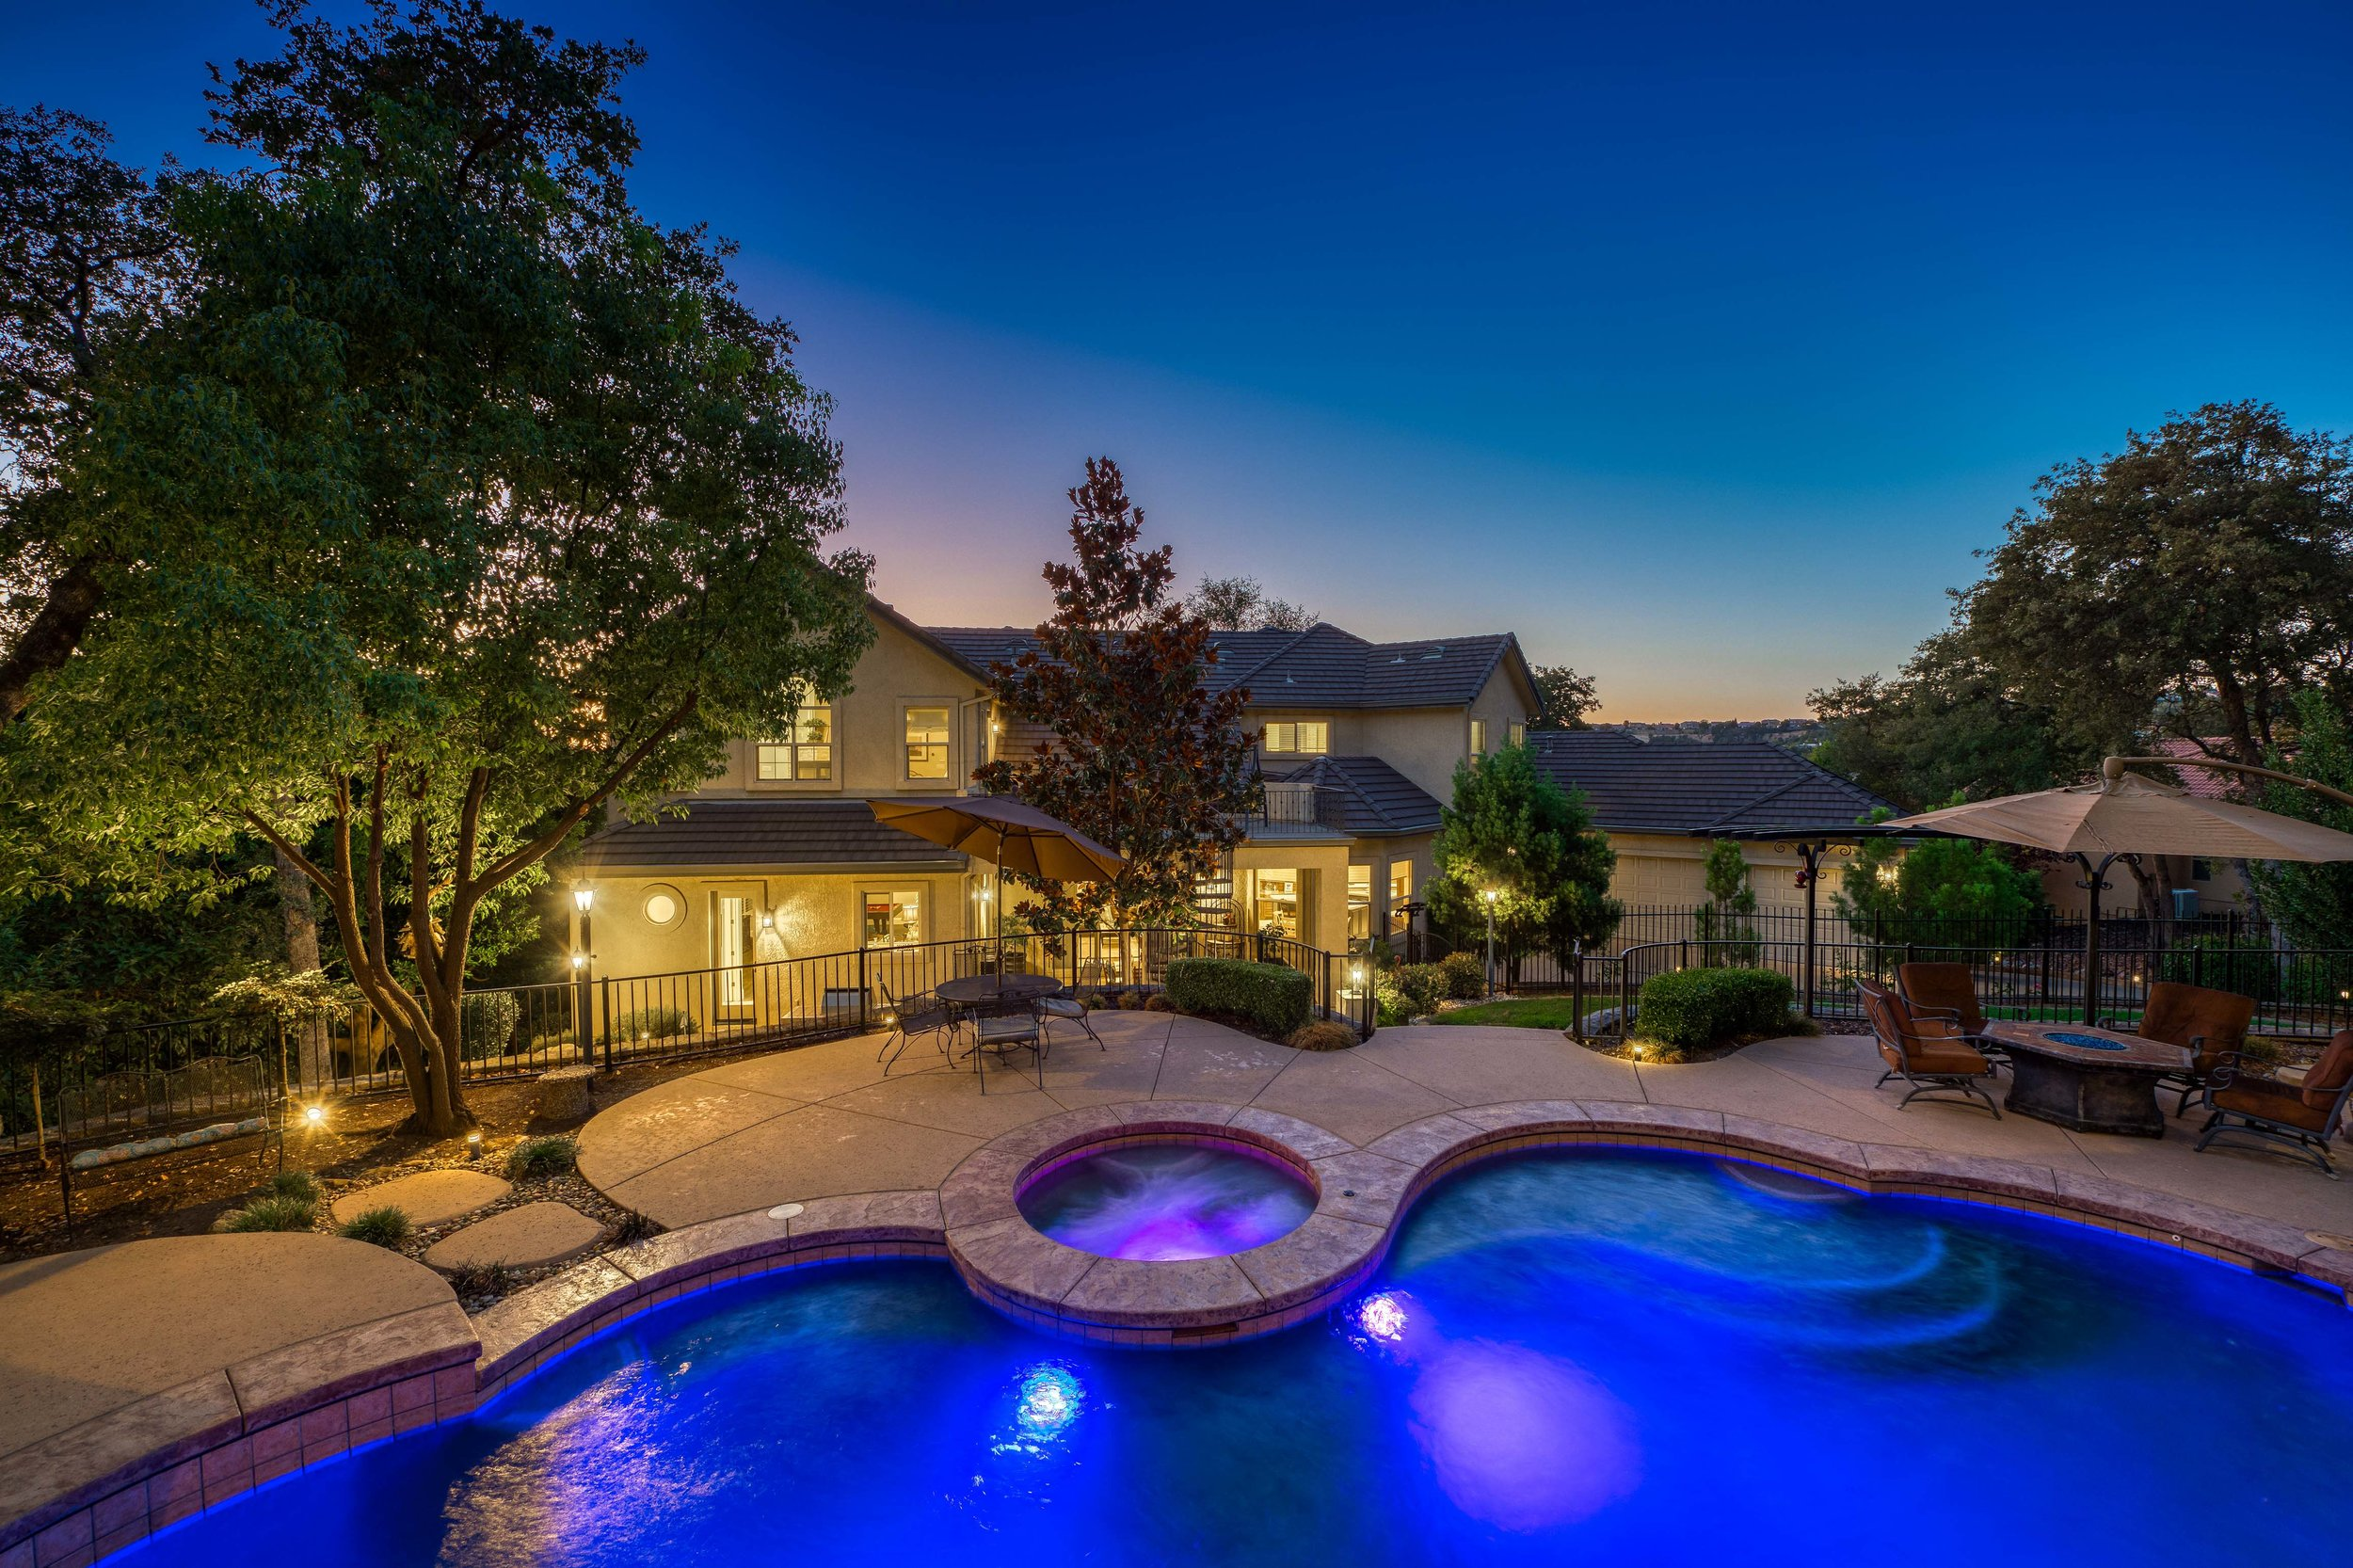 2330 Clubhouse Drive - Twilight - 11.jpg